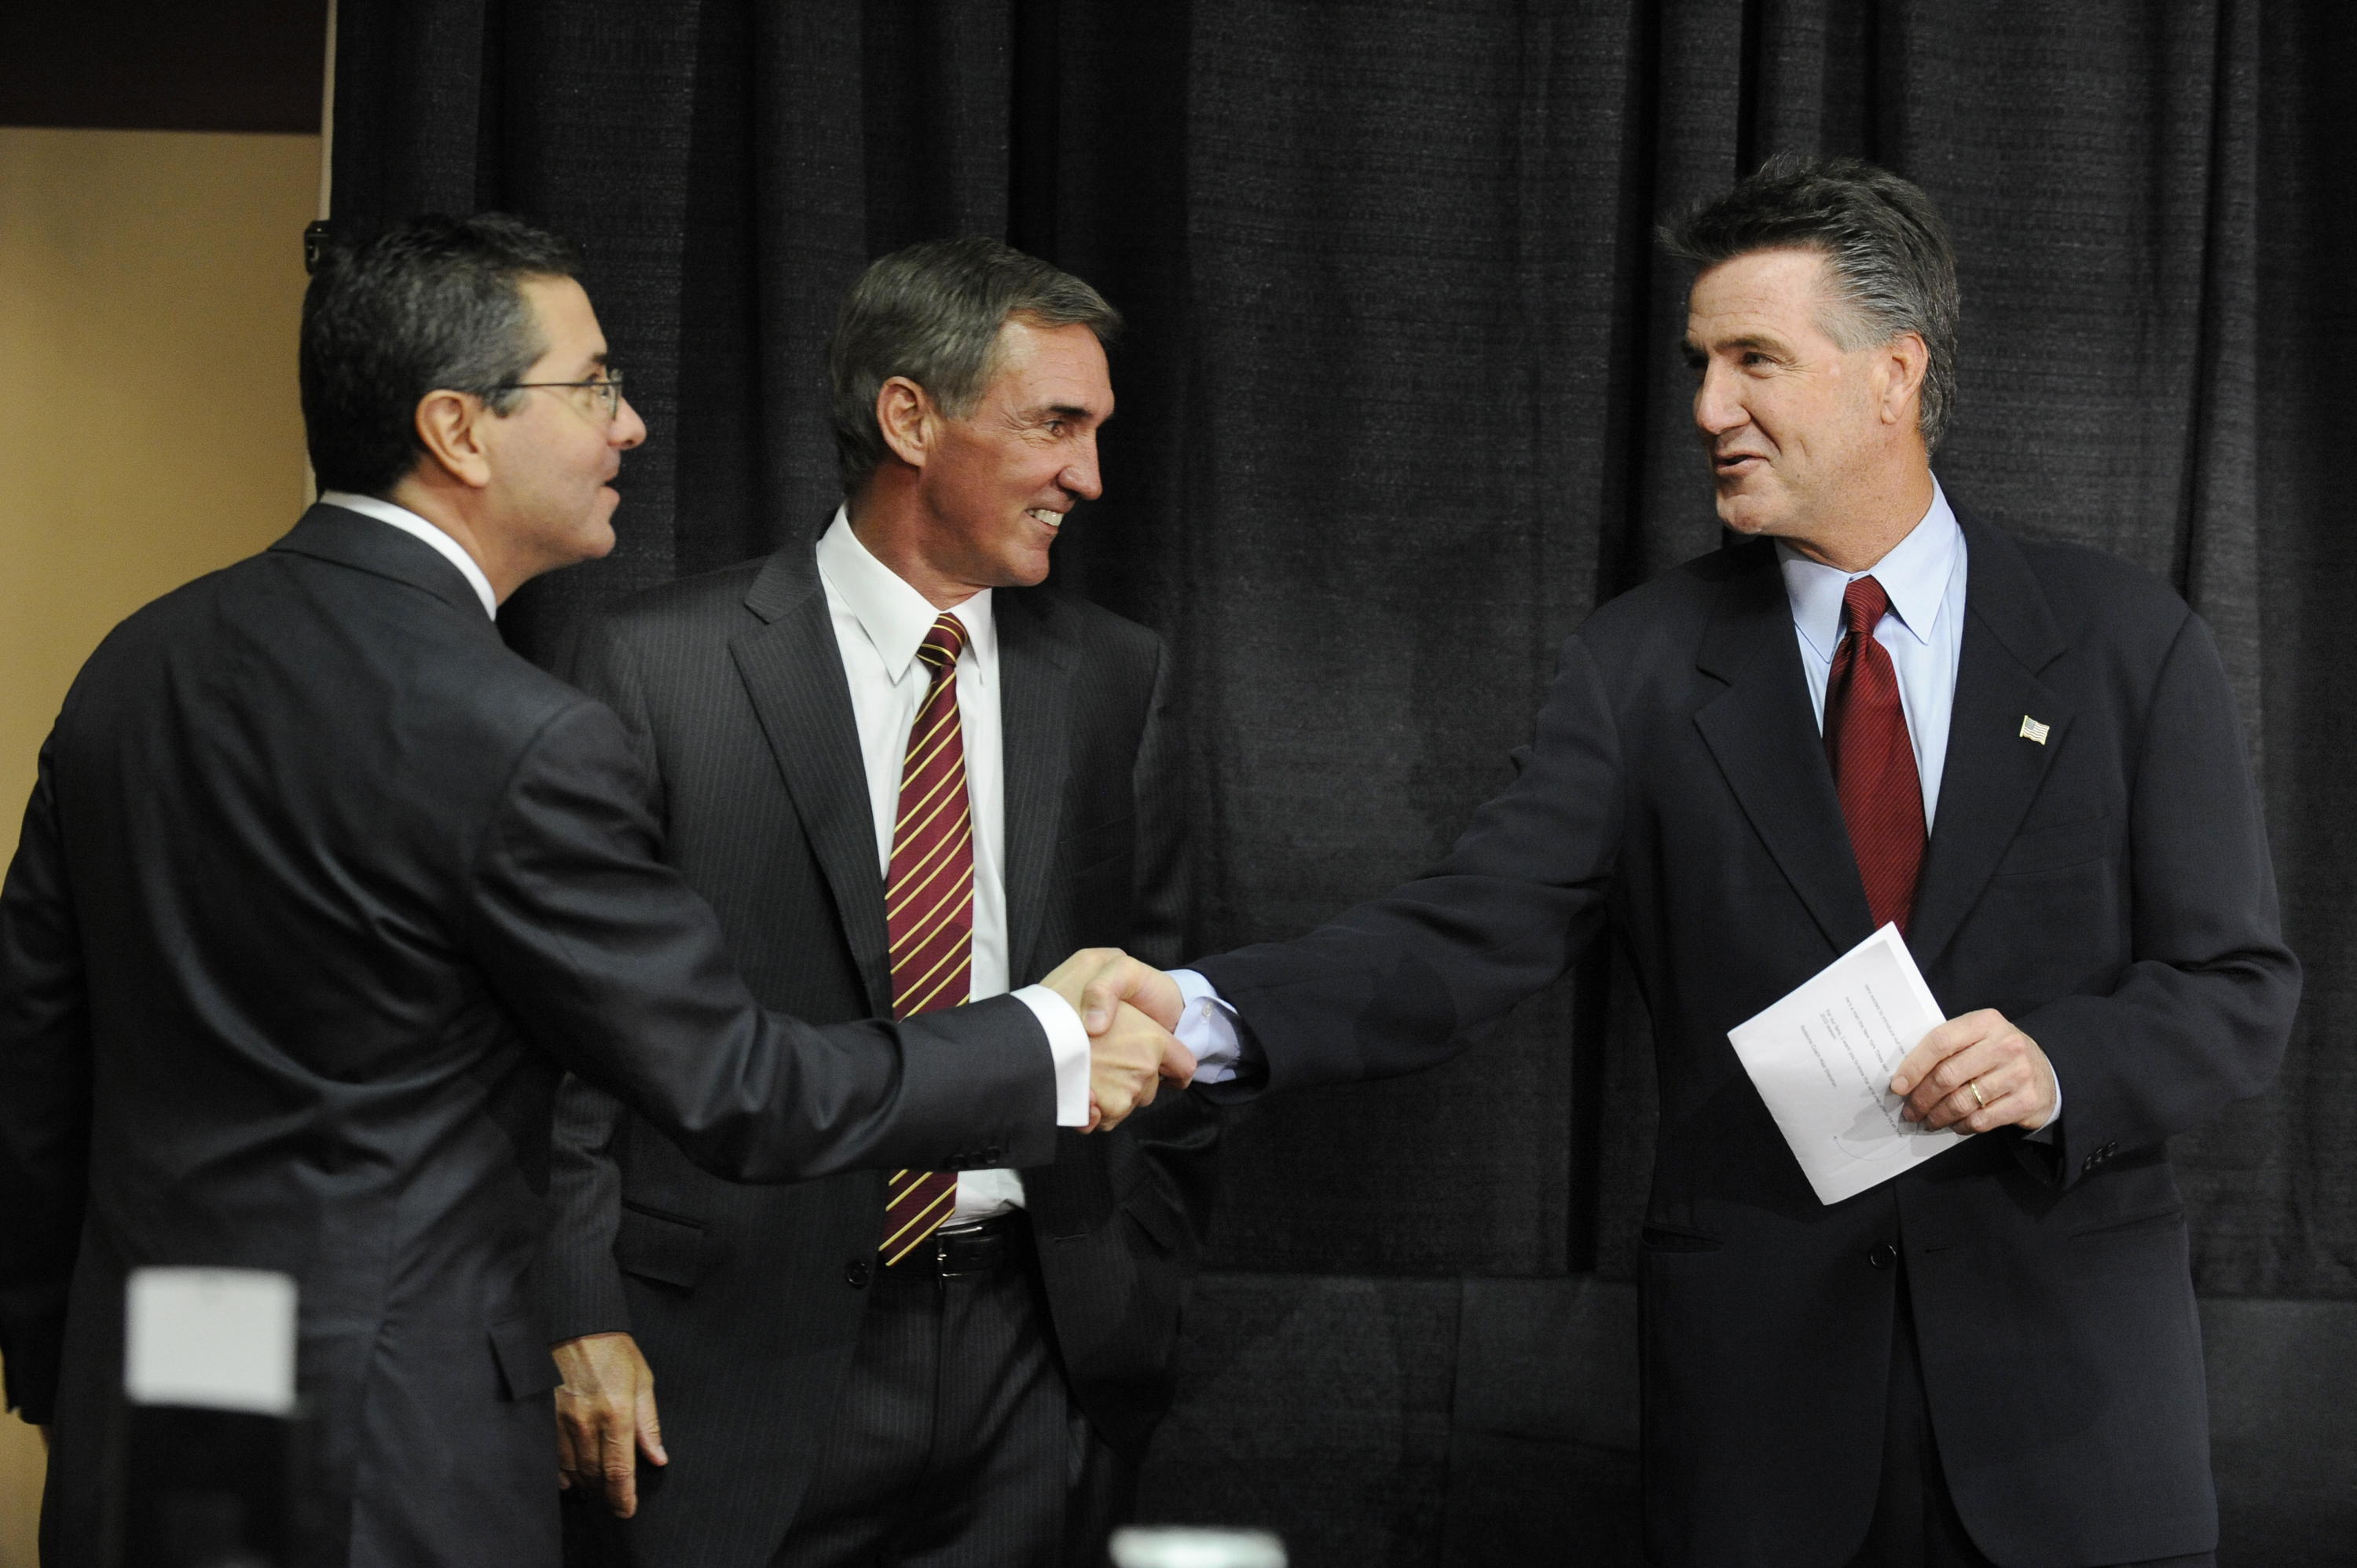 ASHBURN,VA - JANUARY 6:  Dan Snyder, owner of the Washington Redskins, Mike Shanahan the new Executive Vice President and head coach, and Bruce Allen Executive Vice President,  before a press conference welcoming Shanahan to the Redskins on January 6, 201